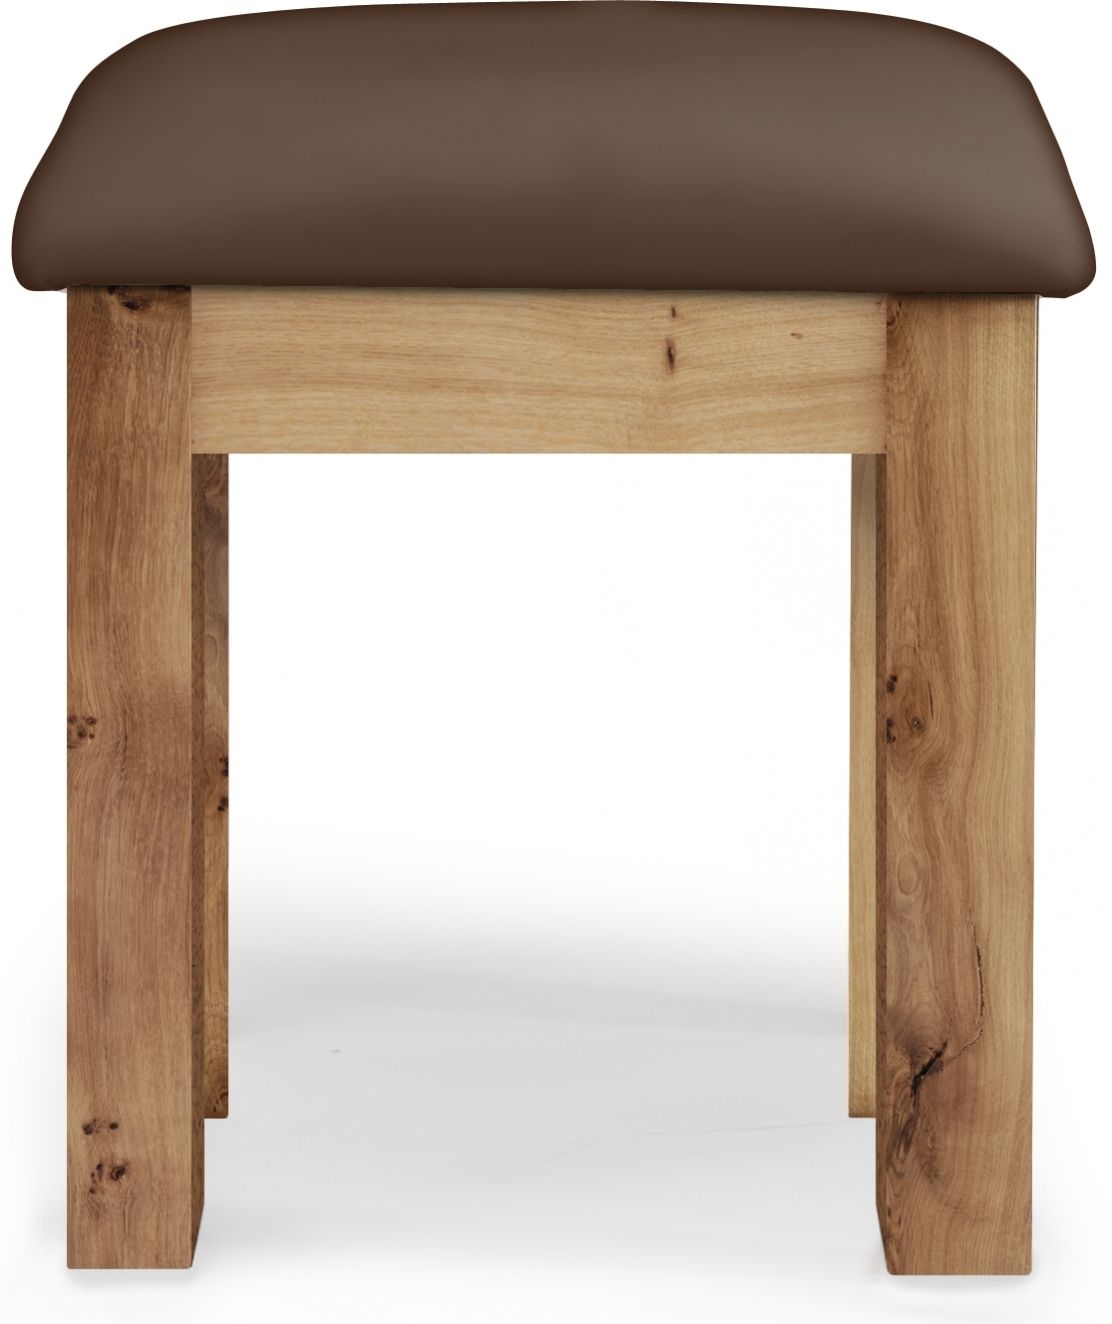 Small Bedroom Stool   Interior Design Bedroom Ideas Check More At Http://www